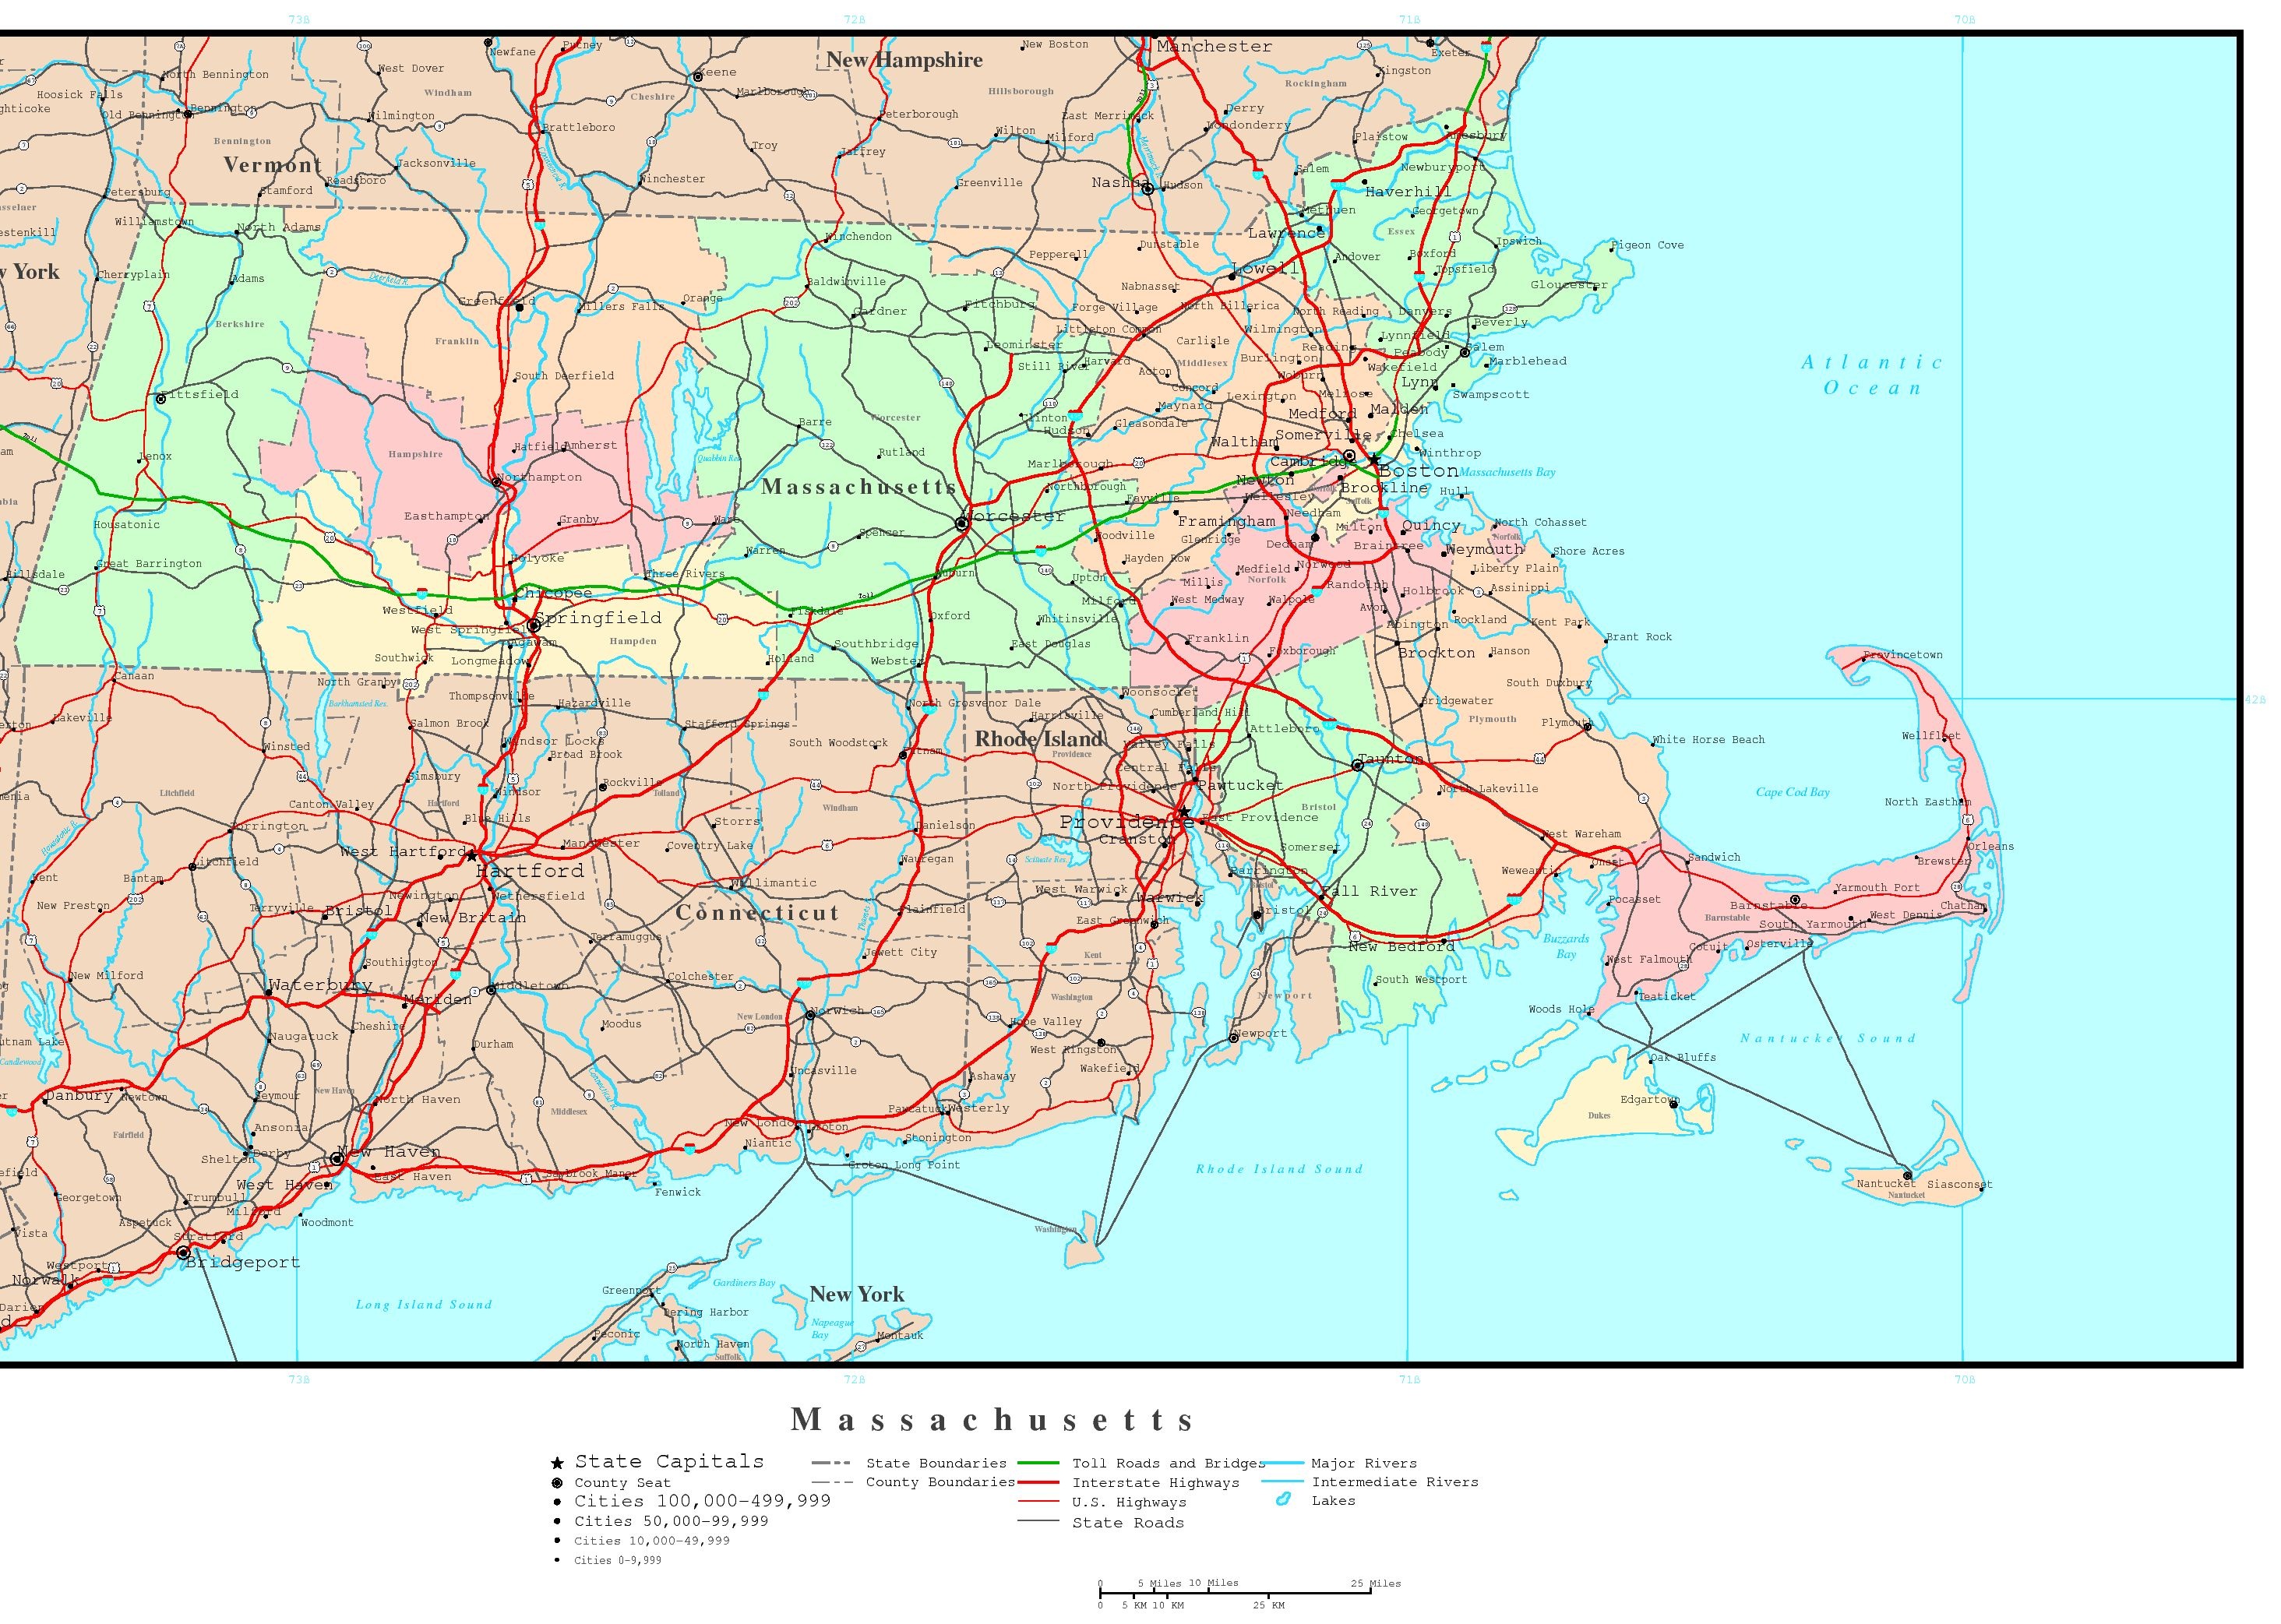 Massachusetts Political Map - Map of massachussets